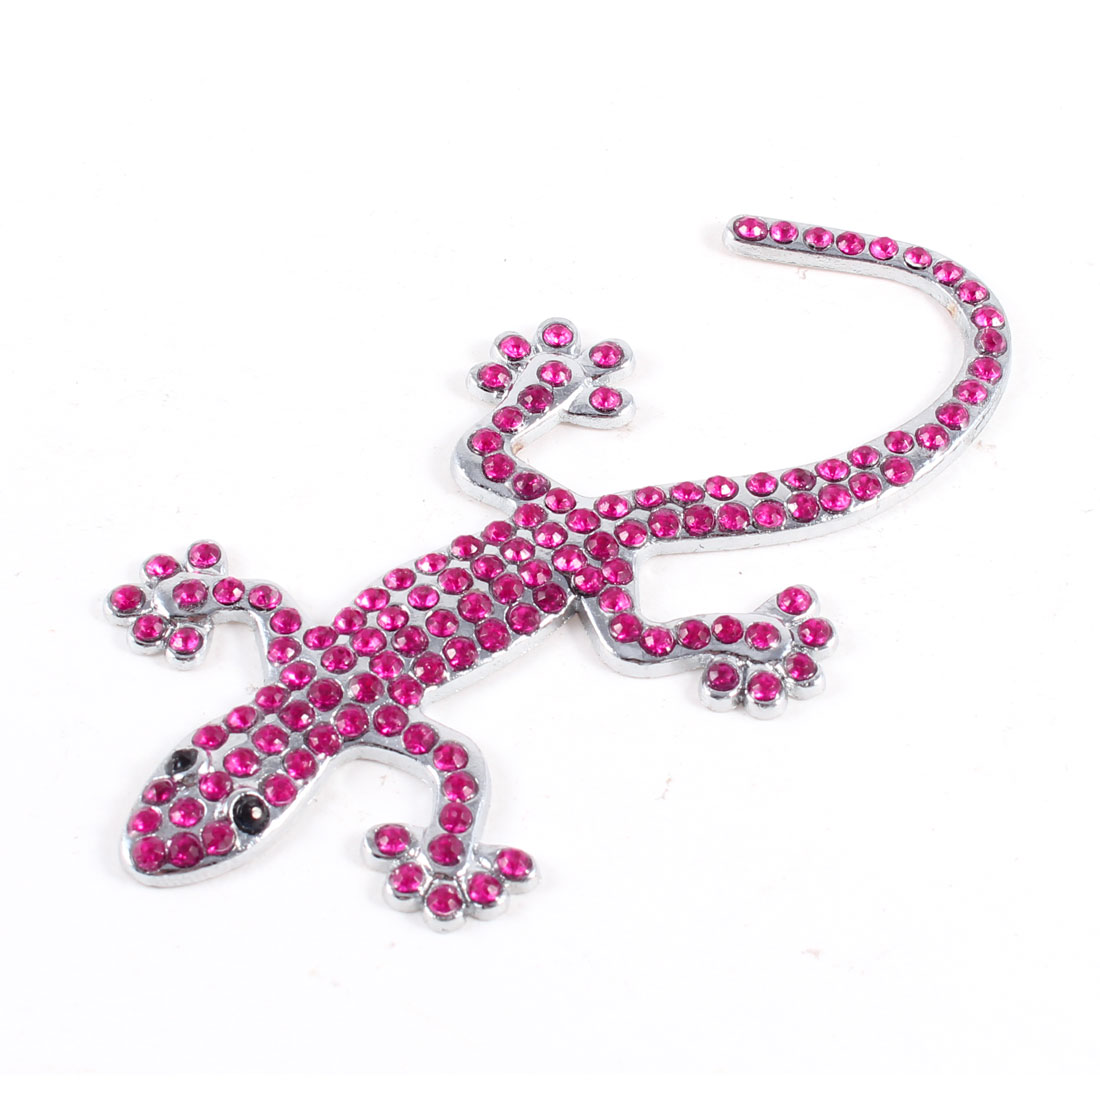 Fuchsia Silver Tone Metal Gecko Shape Adhesive Badge Trucks Cars Sticker